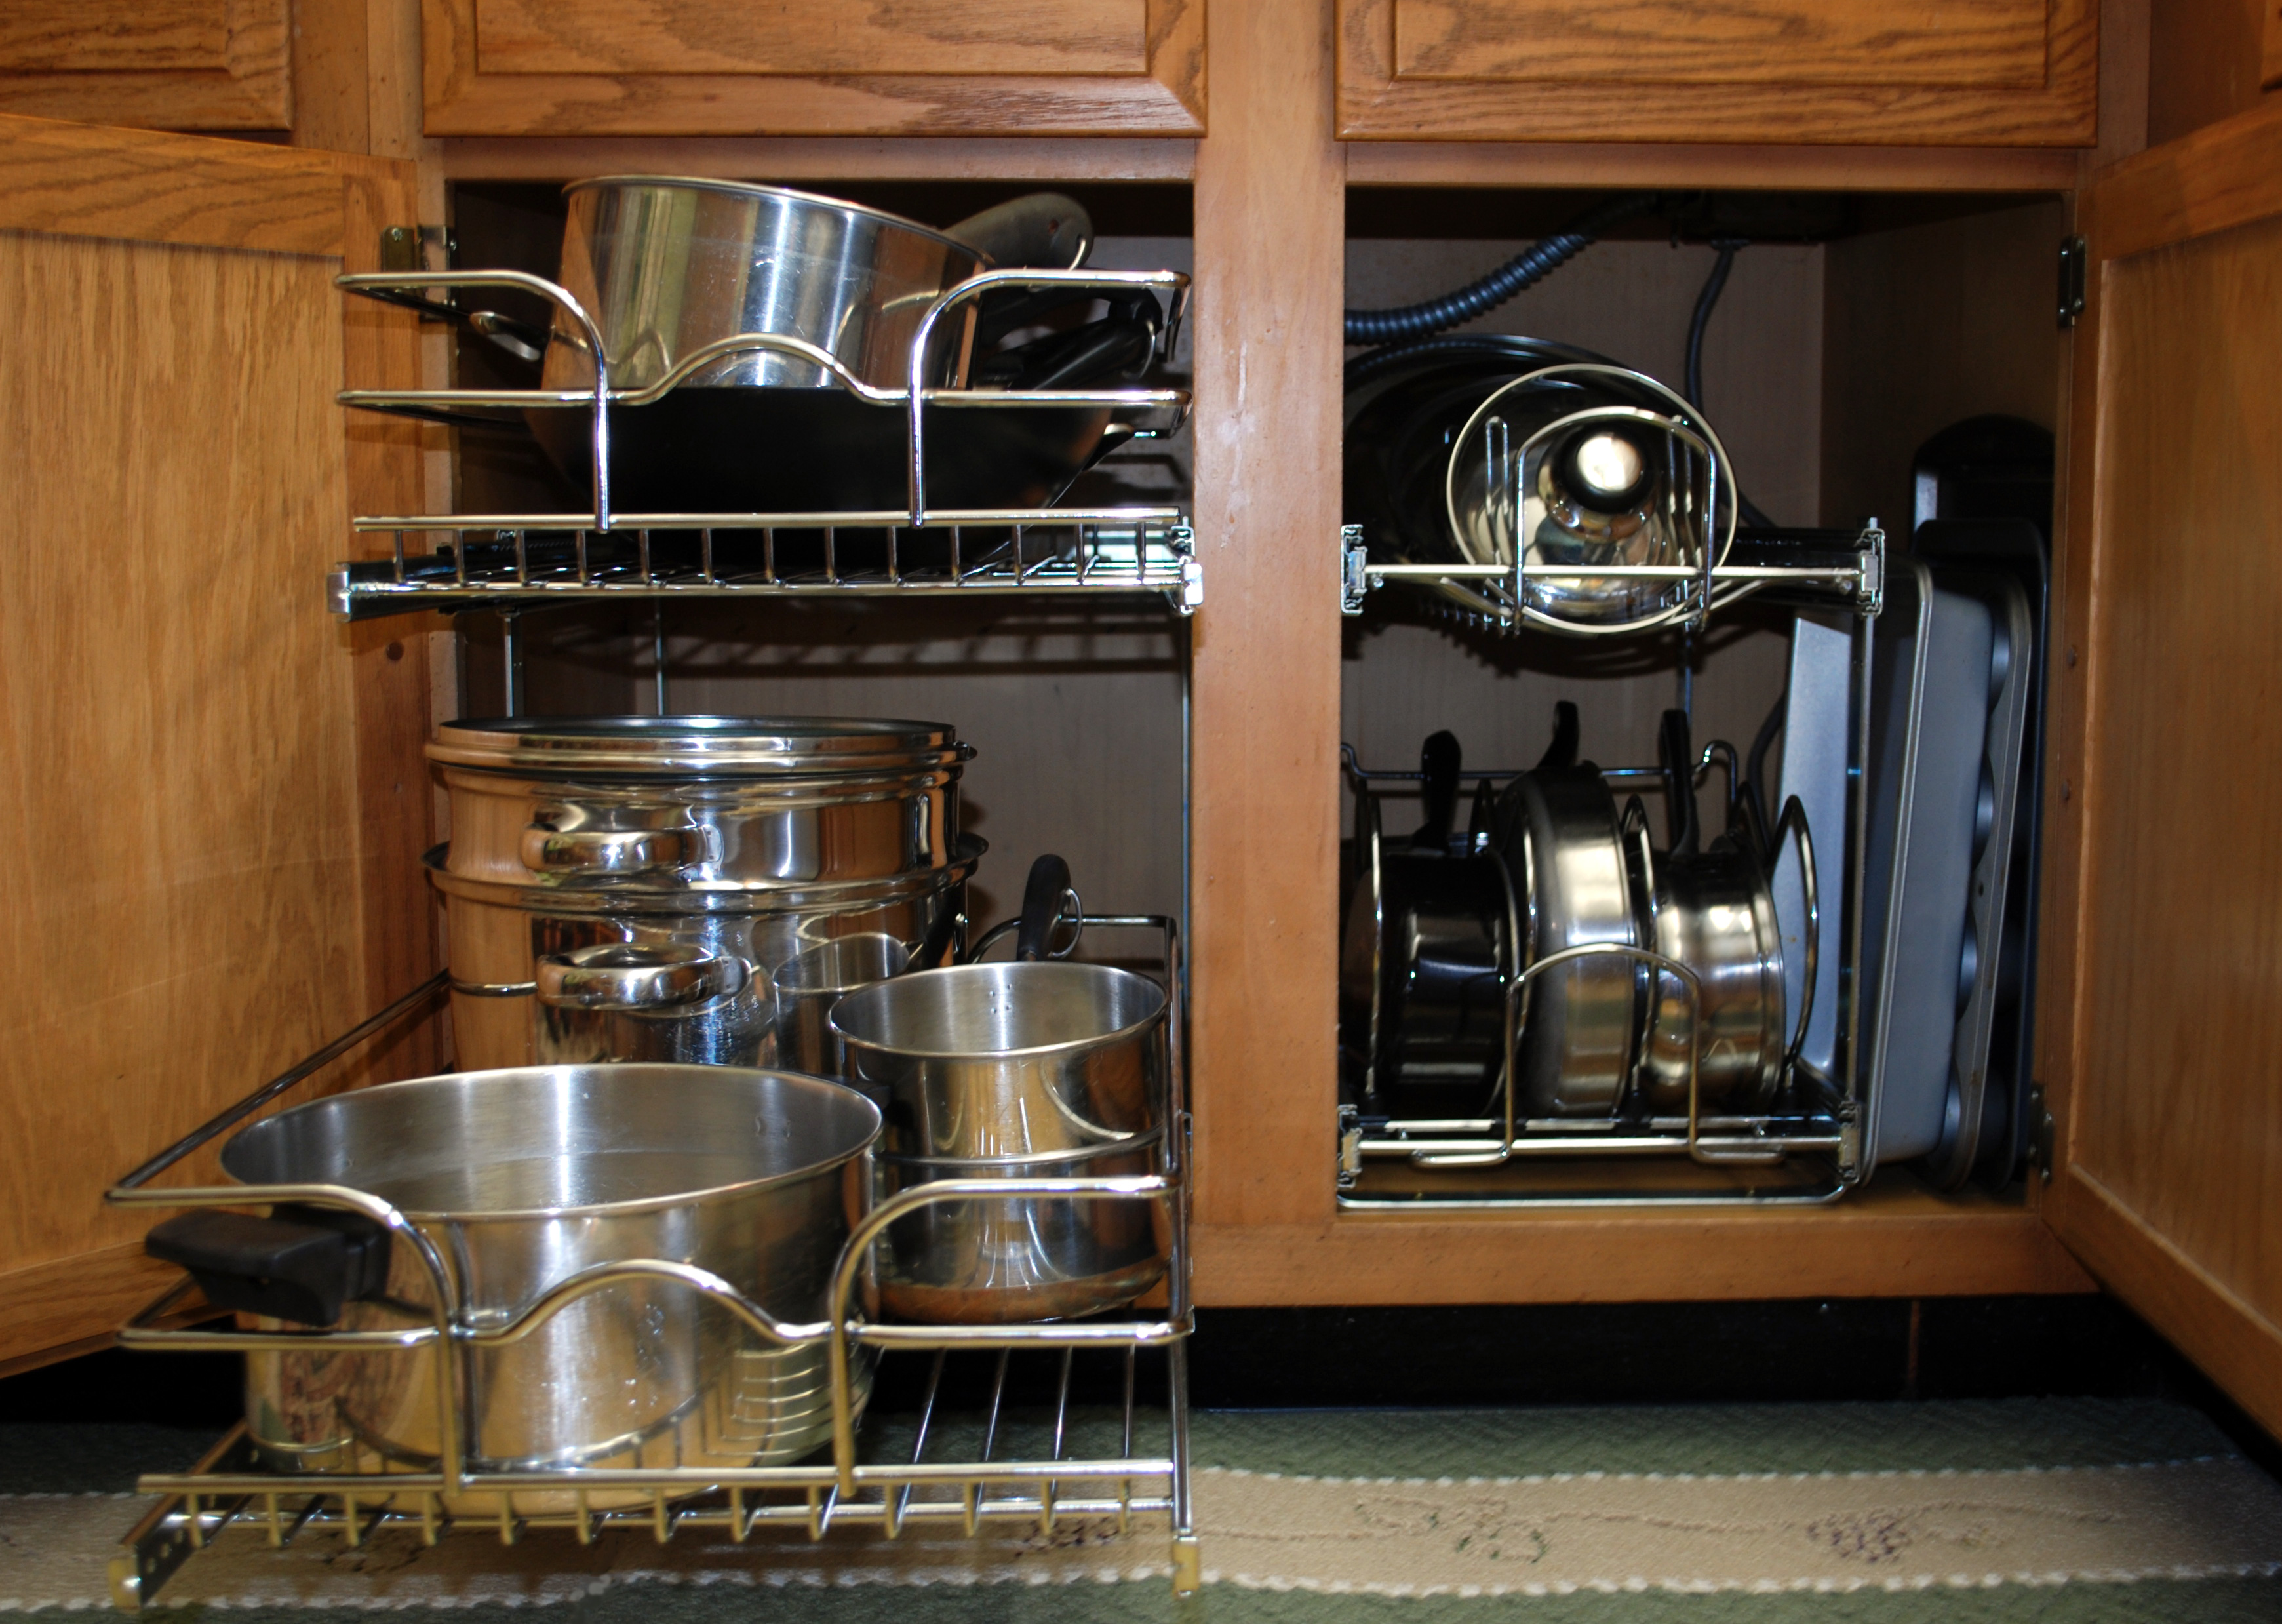 kitchen cabinets organizers built in trash cans for the ovisonline cabinet hardware and reinvent